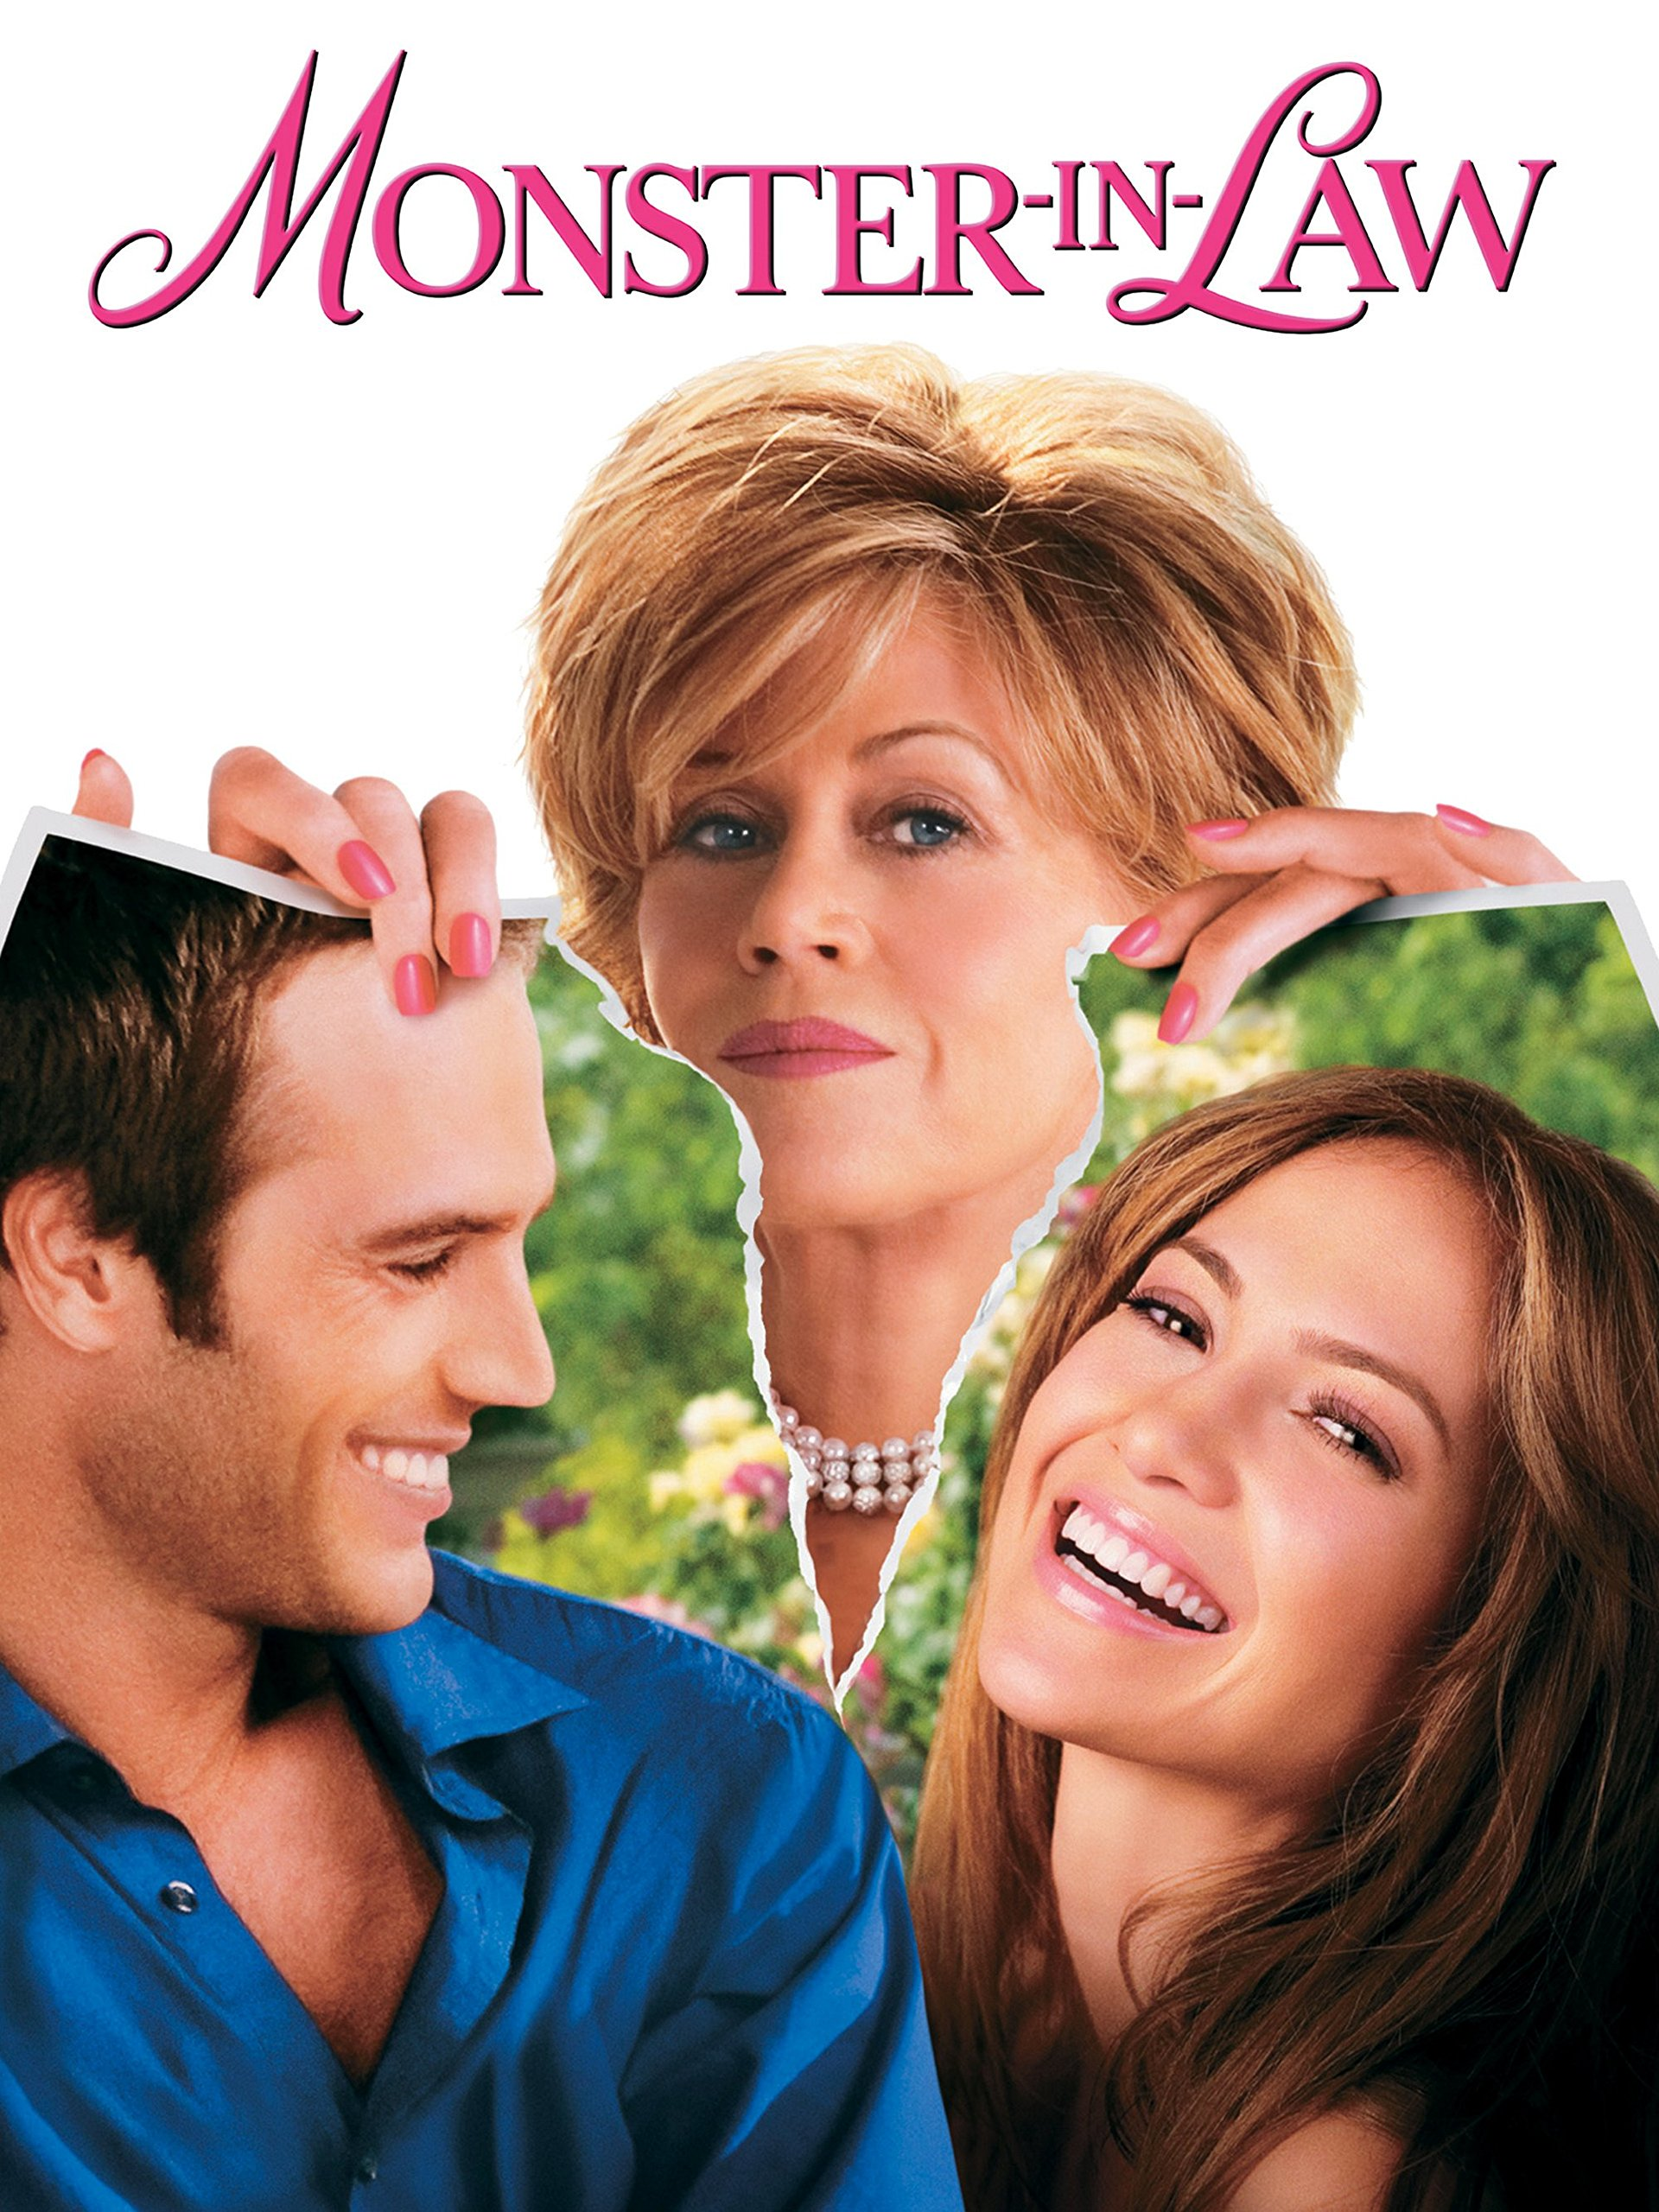 watch monster in law online free 123movies